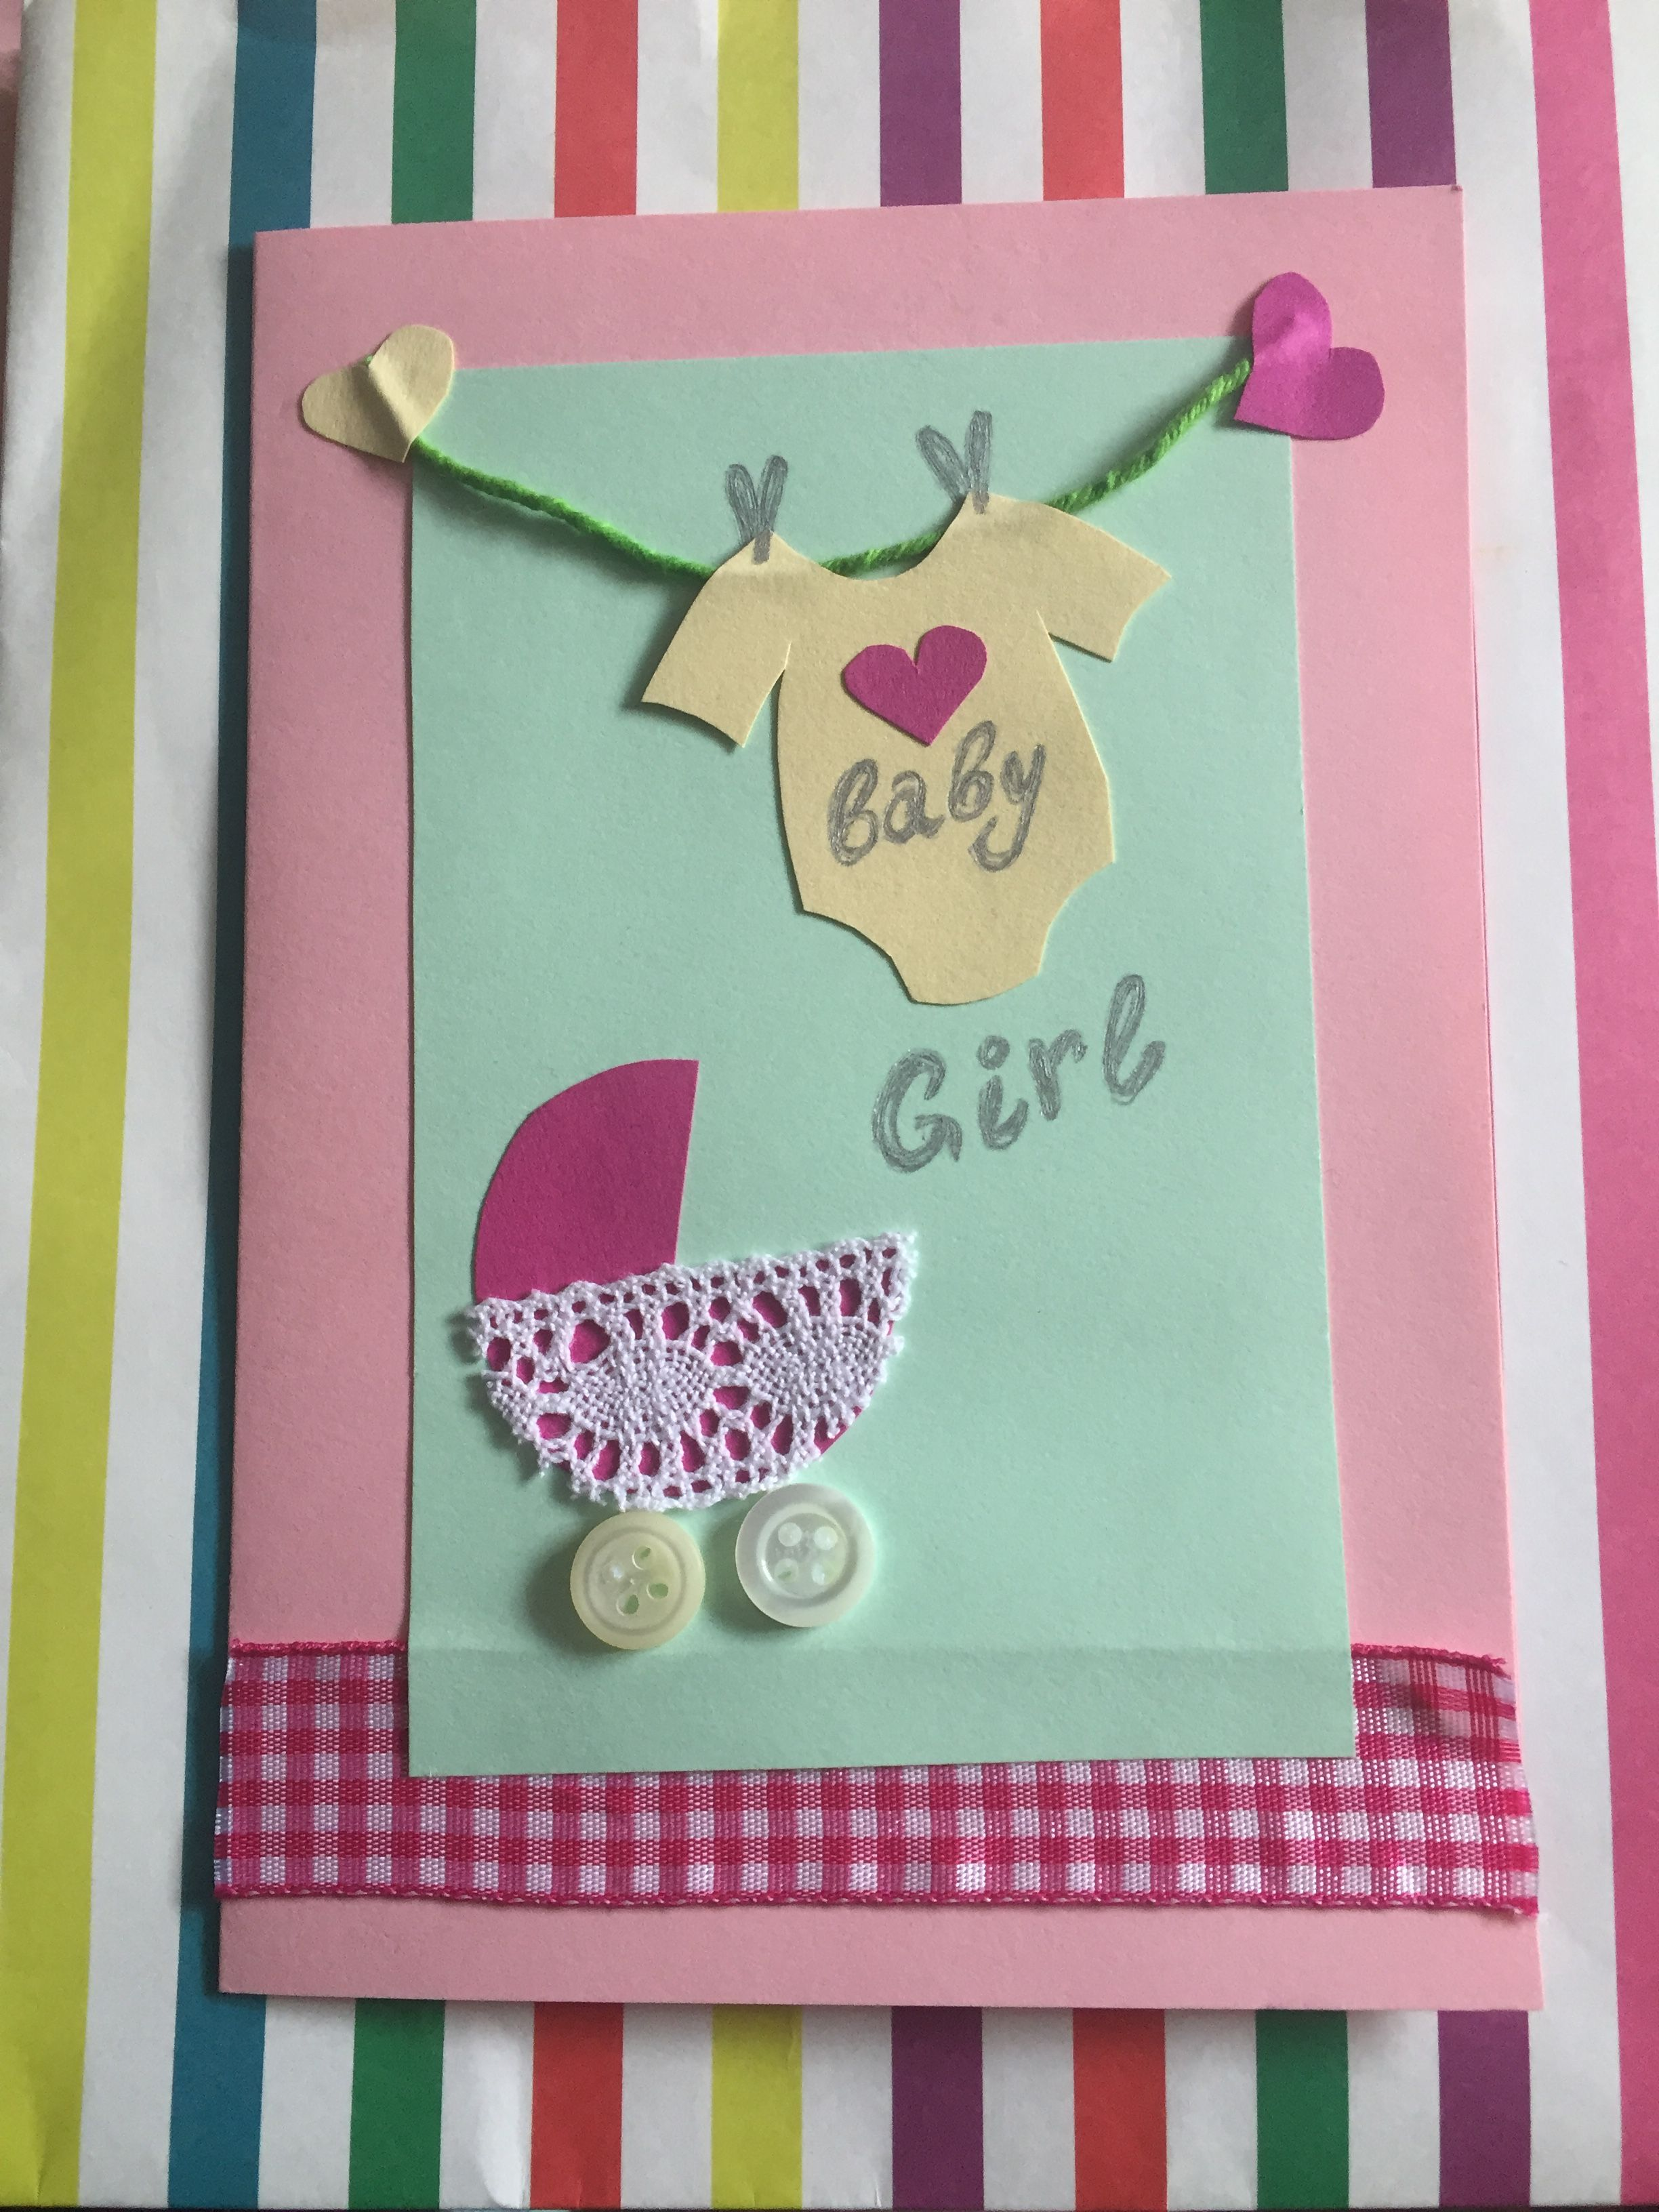 Baby Girl Card Suitable For New Born Baby Or Christening Occasions